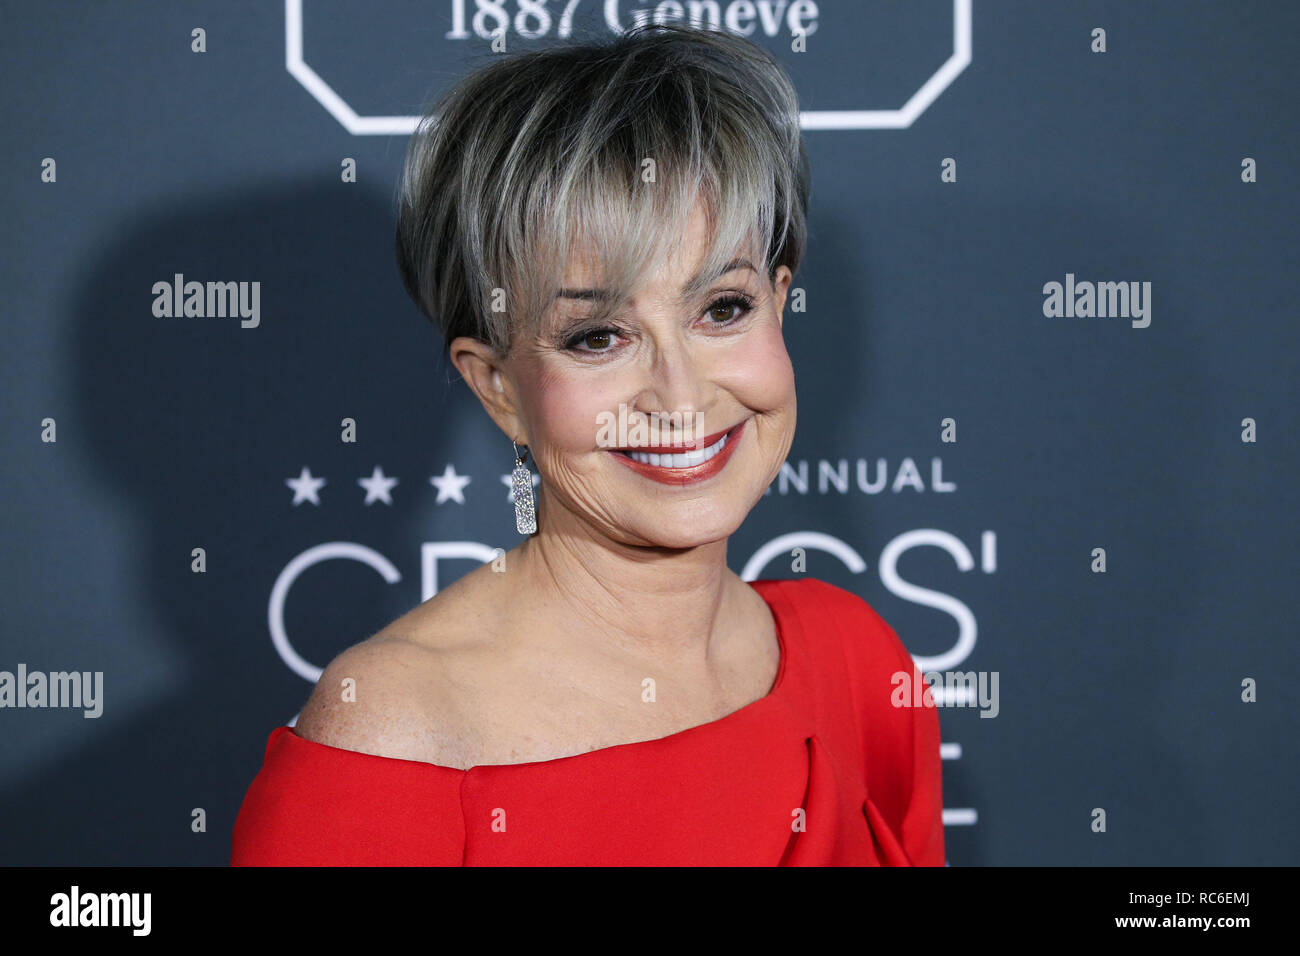 Annie Potts High Resolution Stock Photography and Images ... Annie Potts 2019